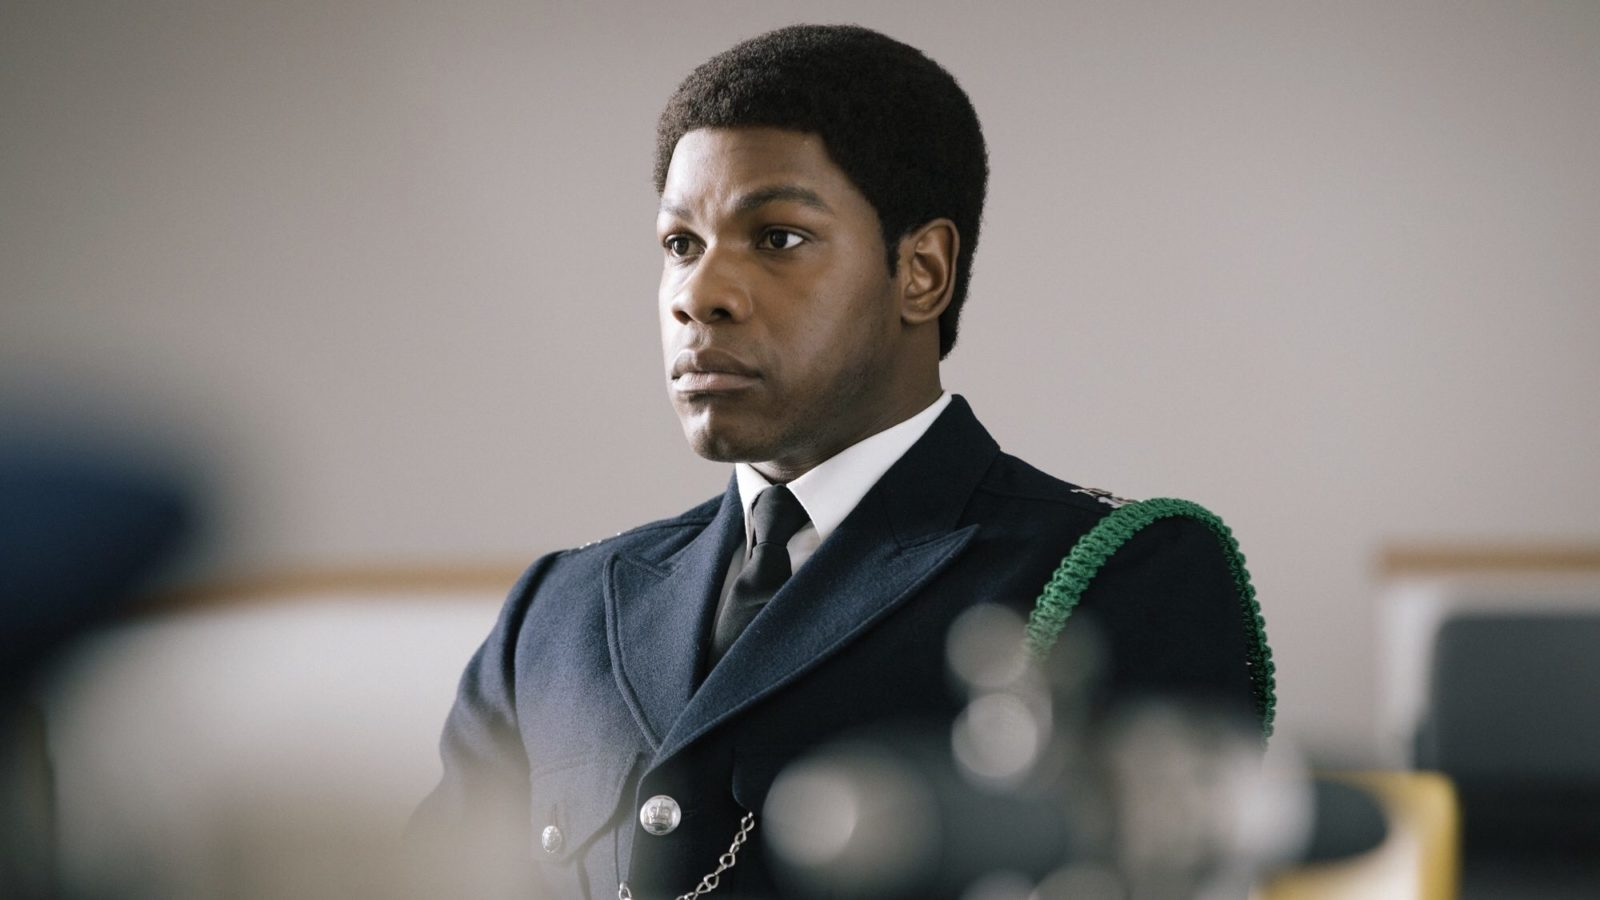 With Small Axe, director Steve McQueen tells the forgotten history of Black Britain